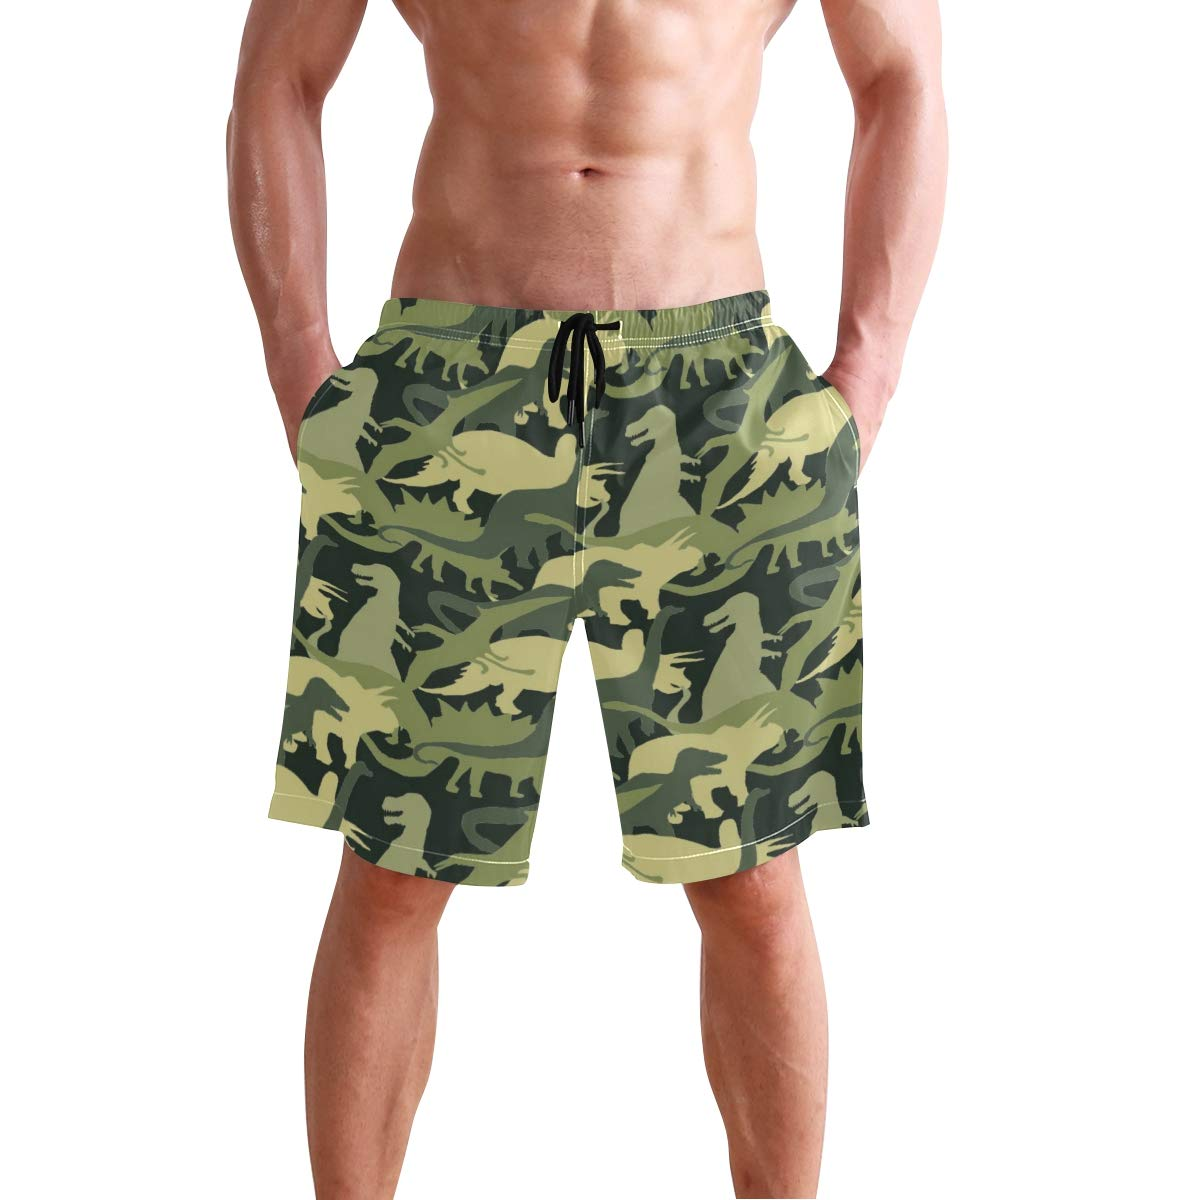 Aluys boutique Mens Swim Trunks Quick Dry Dinosaur Pattern Printed Holiday Beach Board Shorts with Mesh Lining